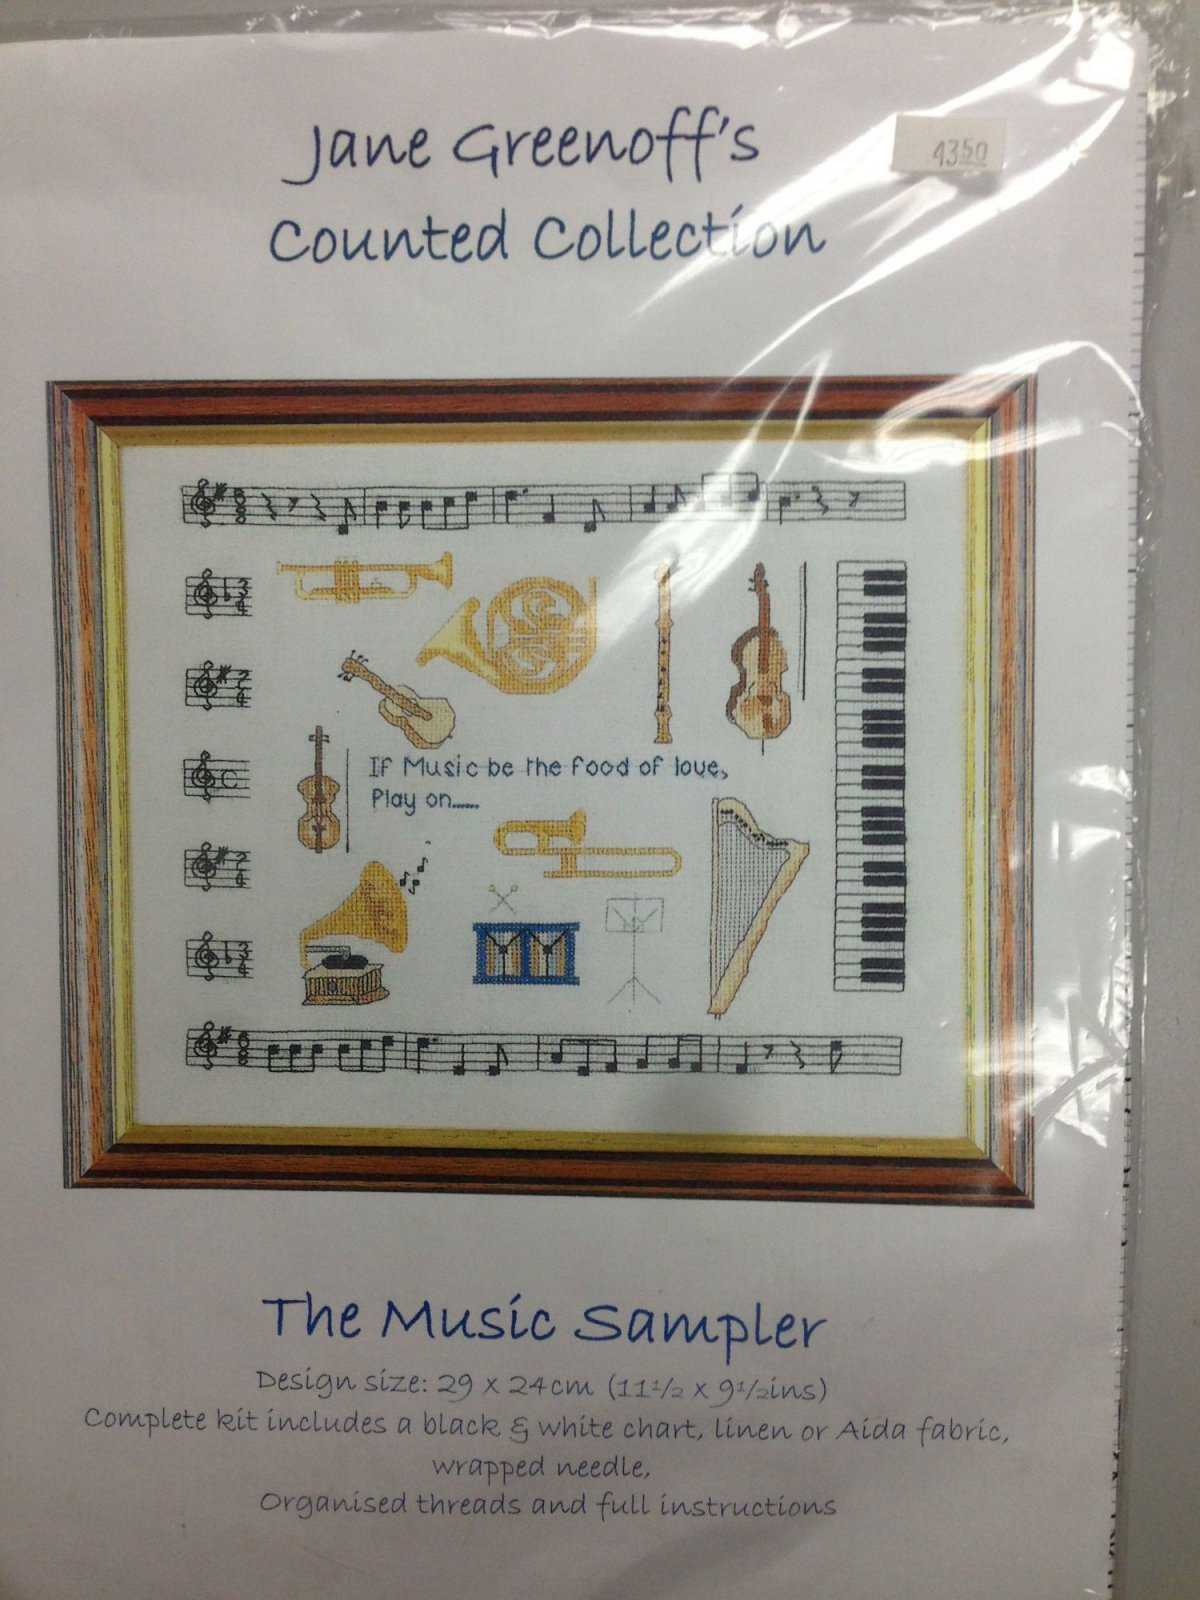 Jane Greenhoff's Counted Collection The Music Sampler